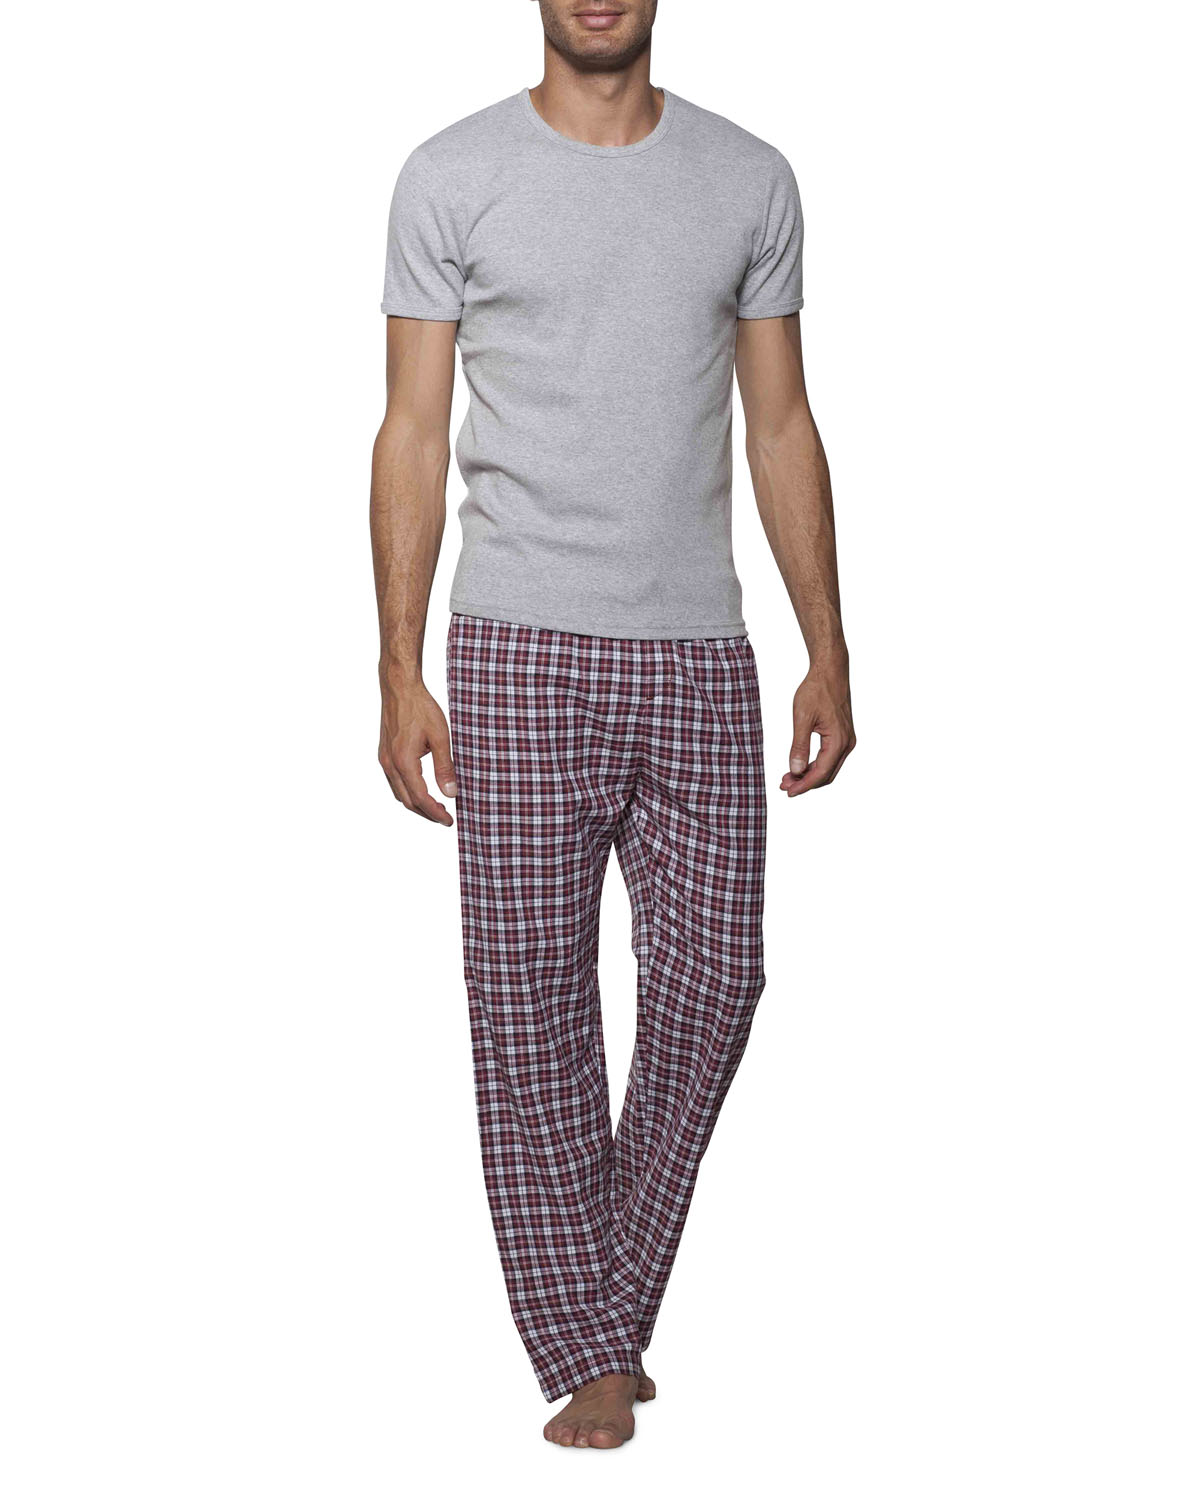 pantalon de pyjama homme 78065406 we fashion. Black Bedroom Furniture Sets. Home Design Ideas